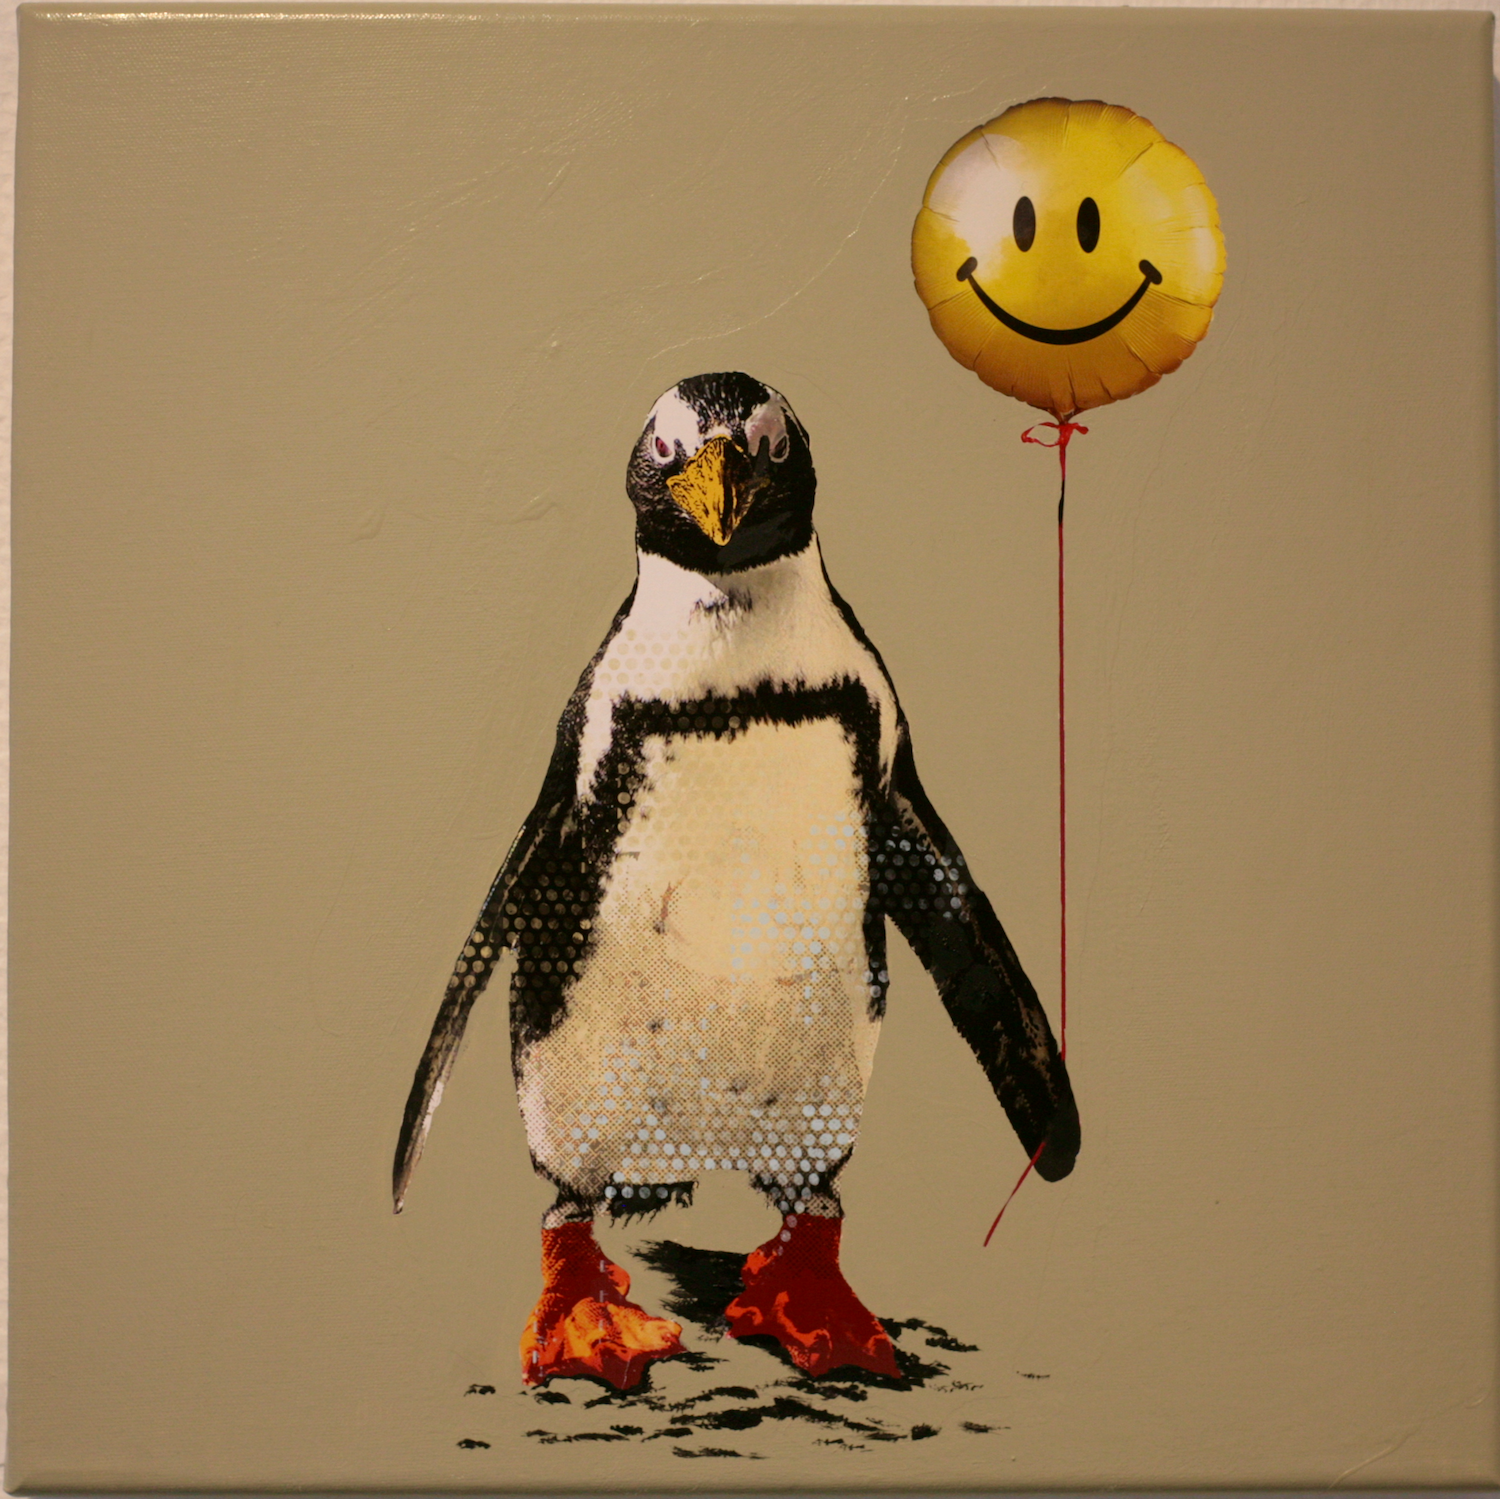 Robert Hilmersson - Don´t worry be happy, oil painting on canvas